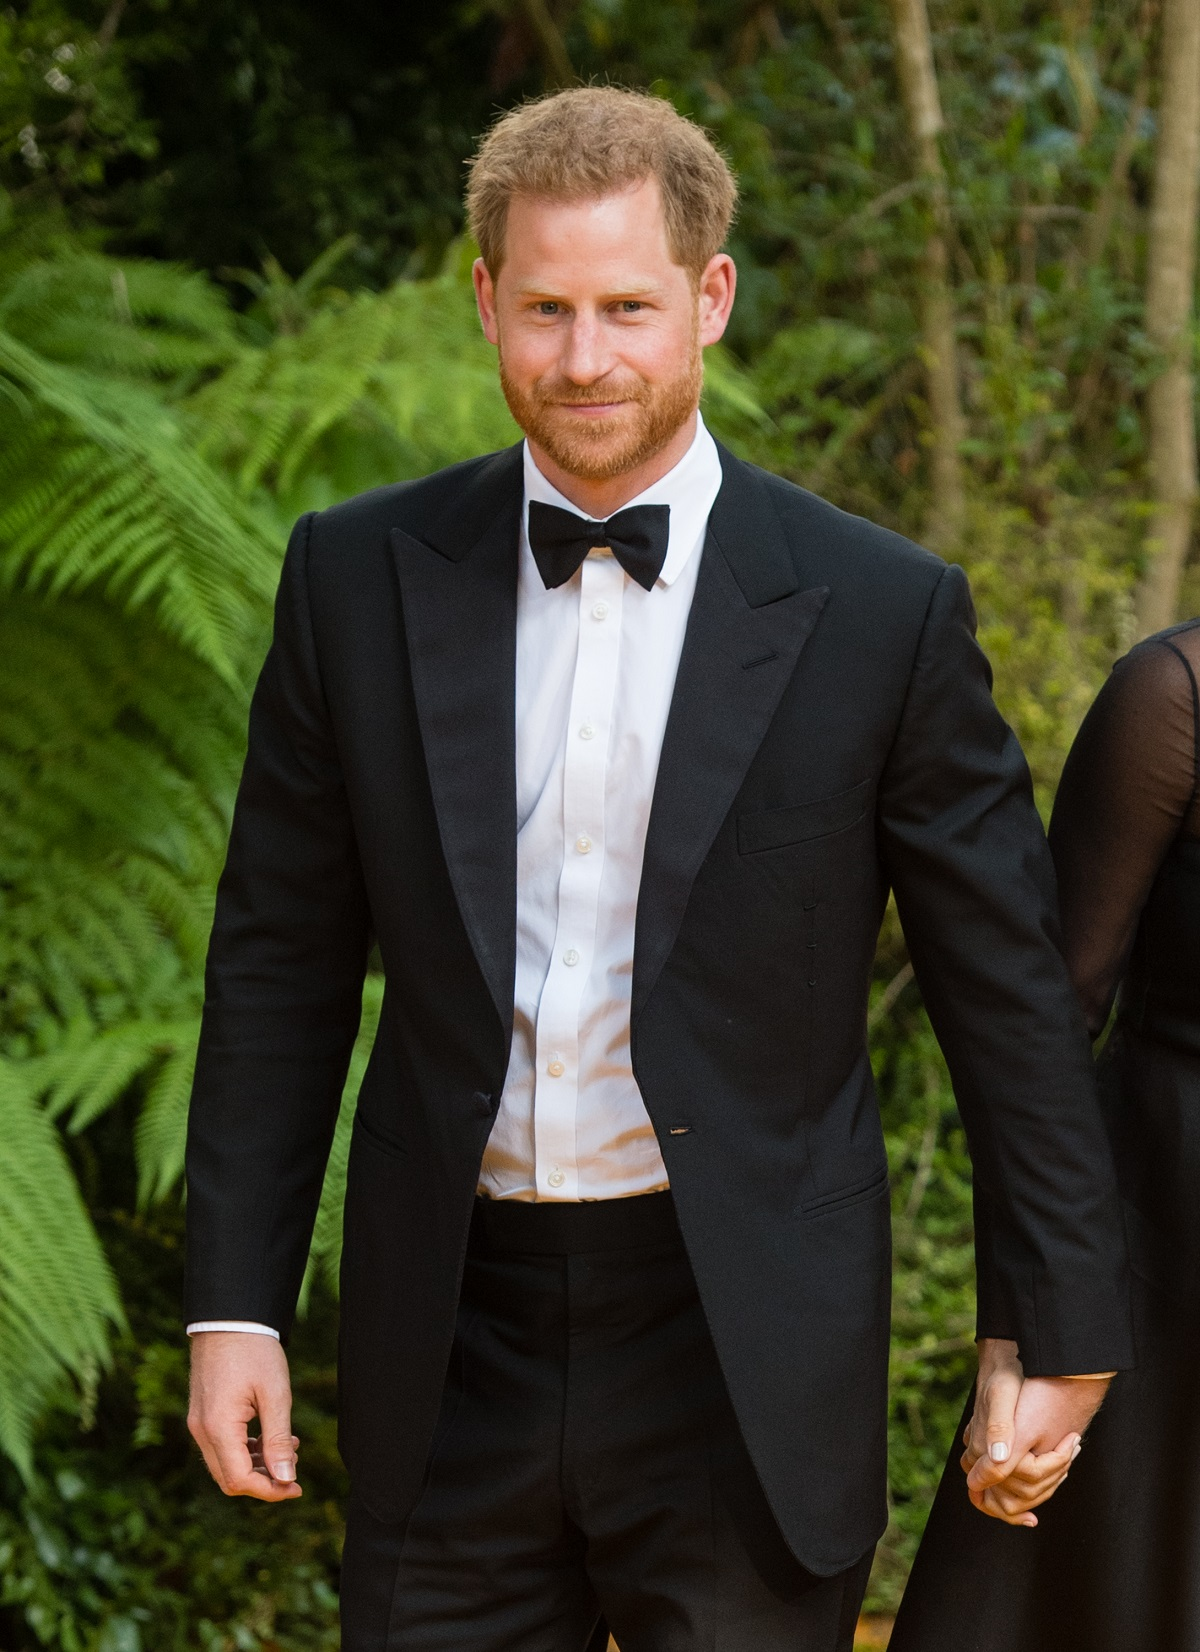 Prince Harry, Duke of Sussex, in a suit, holding hands with Meghan Markle (not fully pictured) at 'The Lion King' European Premiere at Leicester Square in London in 2019